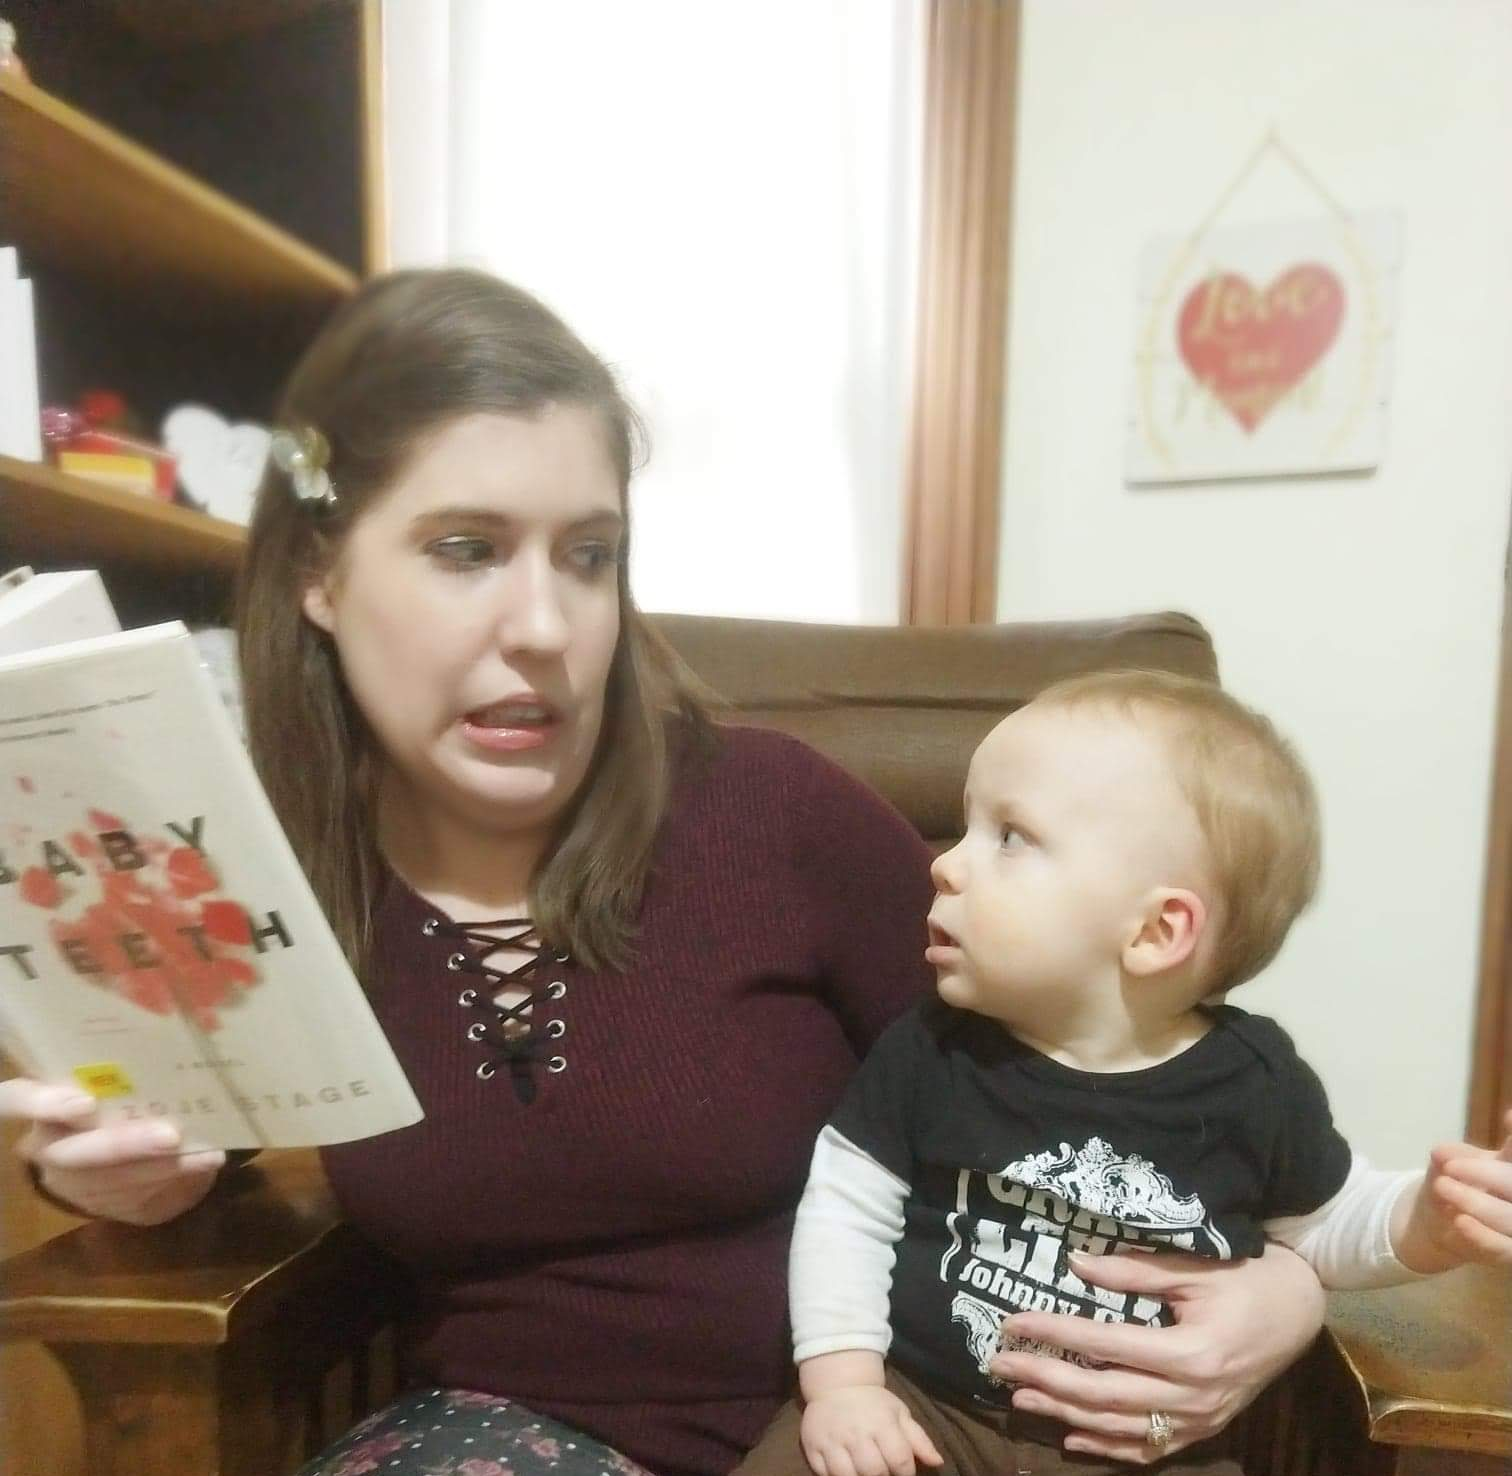 woman and baby looking suspiciously at each other